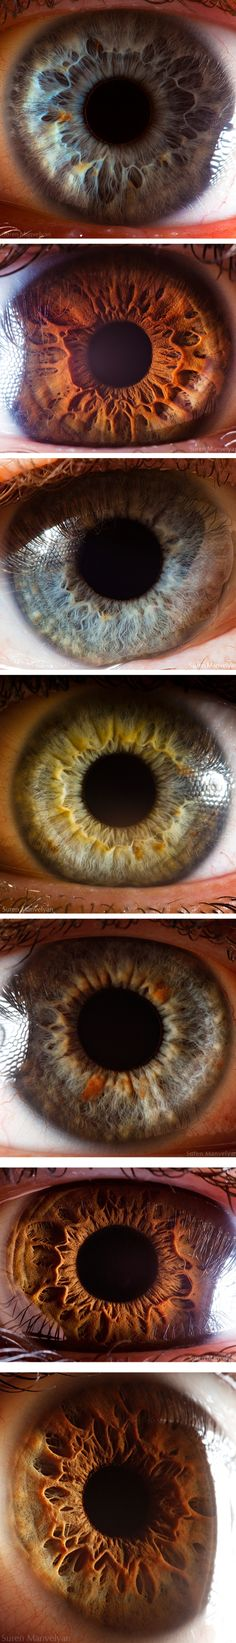 """Eyes"" Photographer Suren Manvelyan's close up images of human and animal eyes. http://www.surenmanvelyan.com/"